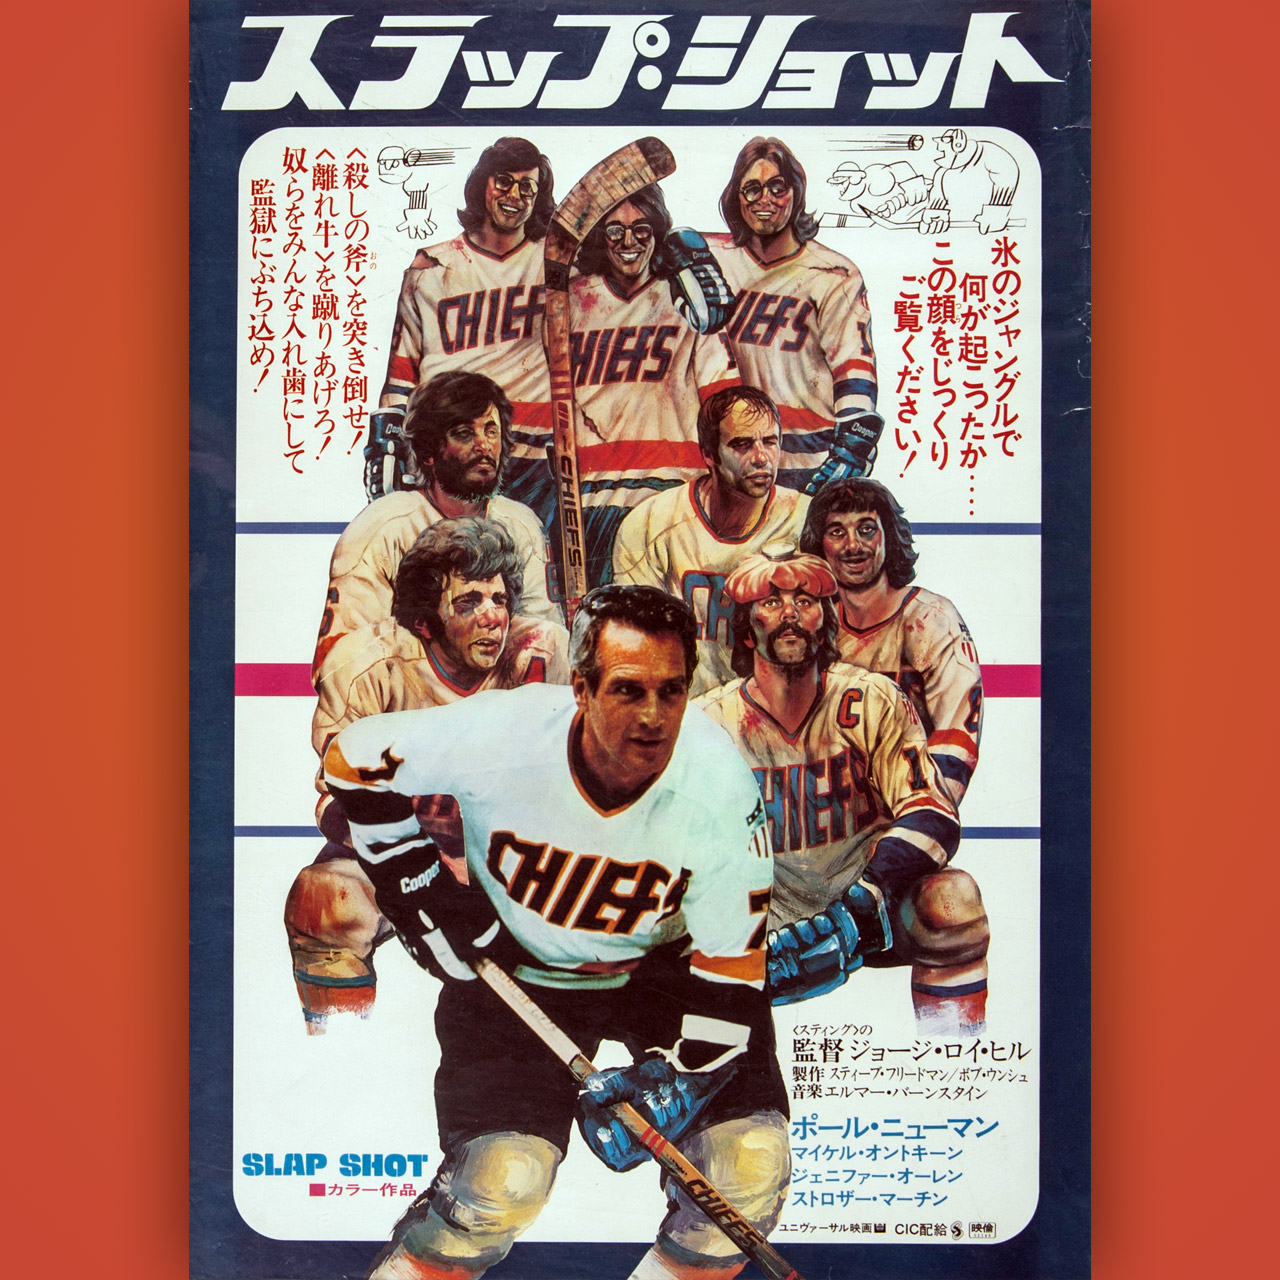 Japanese poster for 'Slap Shot'